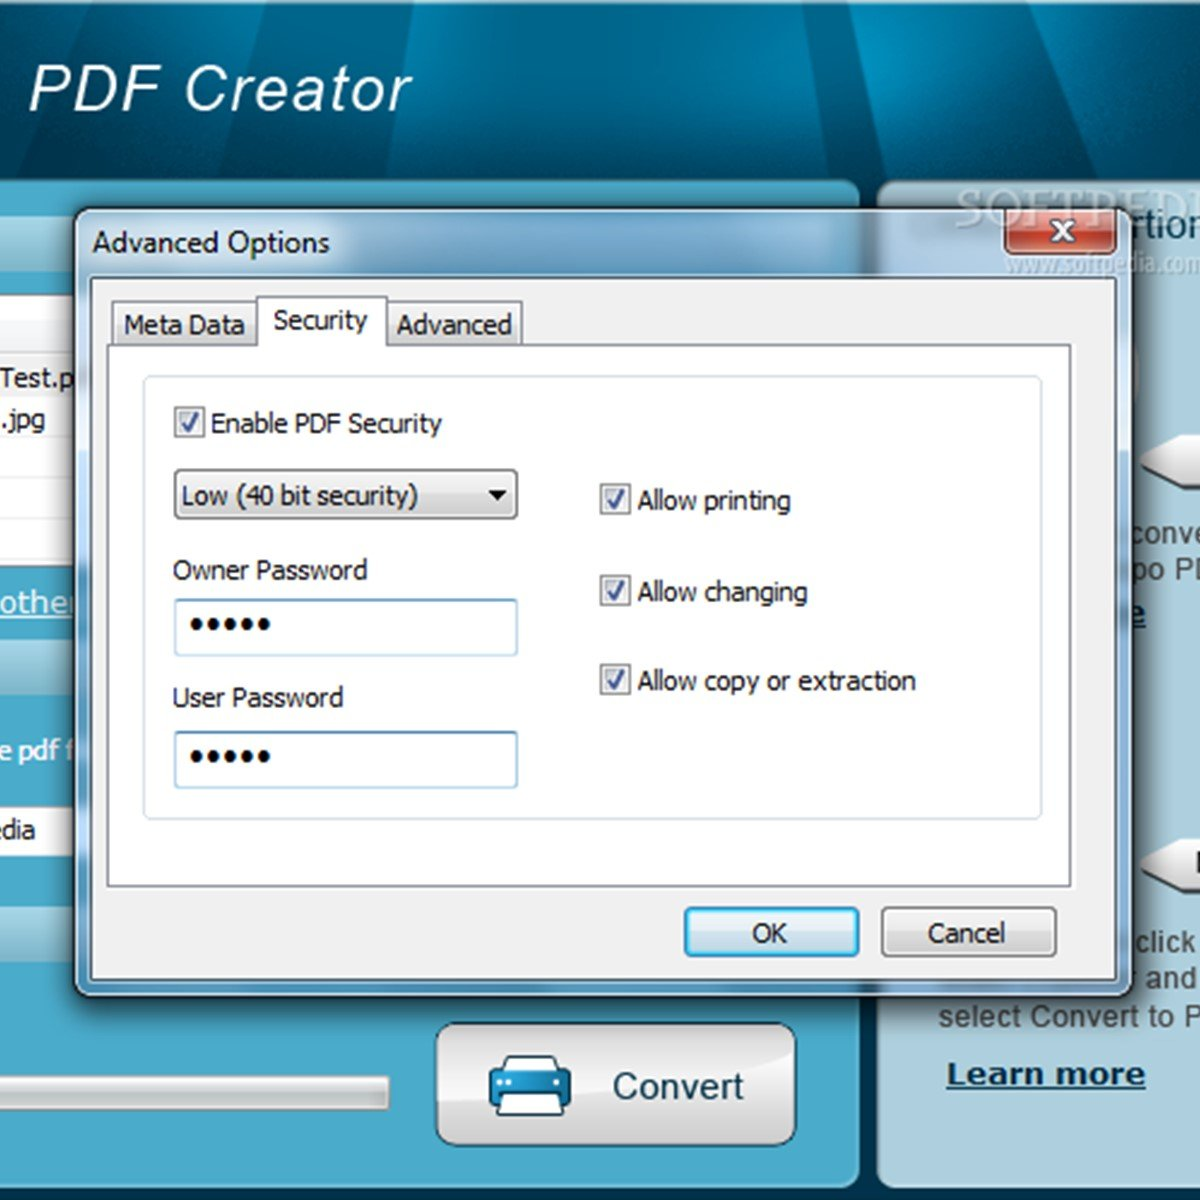 Pdfcreator: Simpo PDF Creator Alternatives And Similar Software